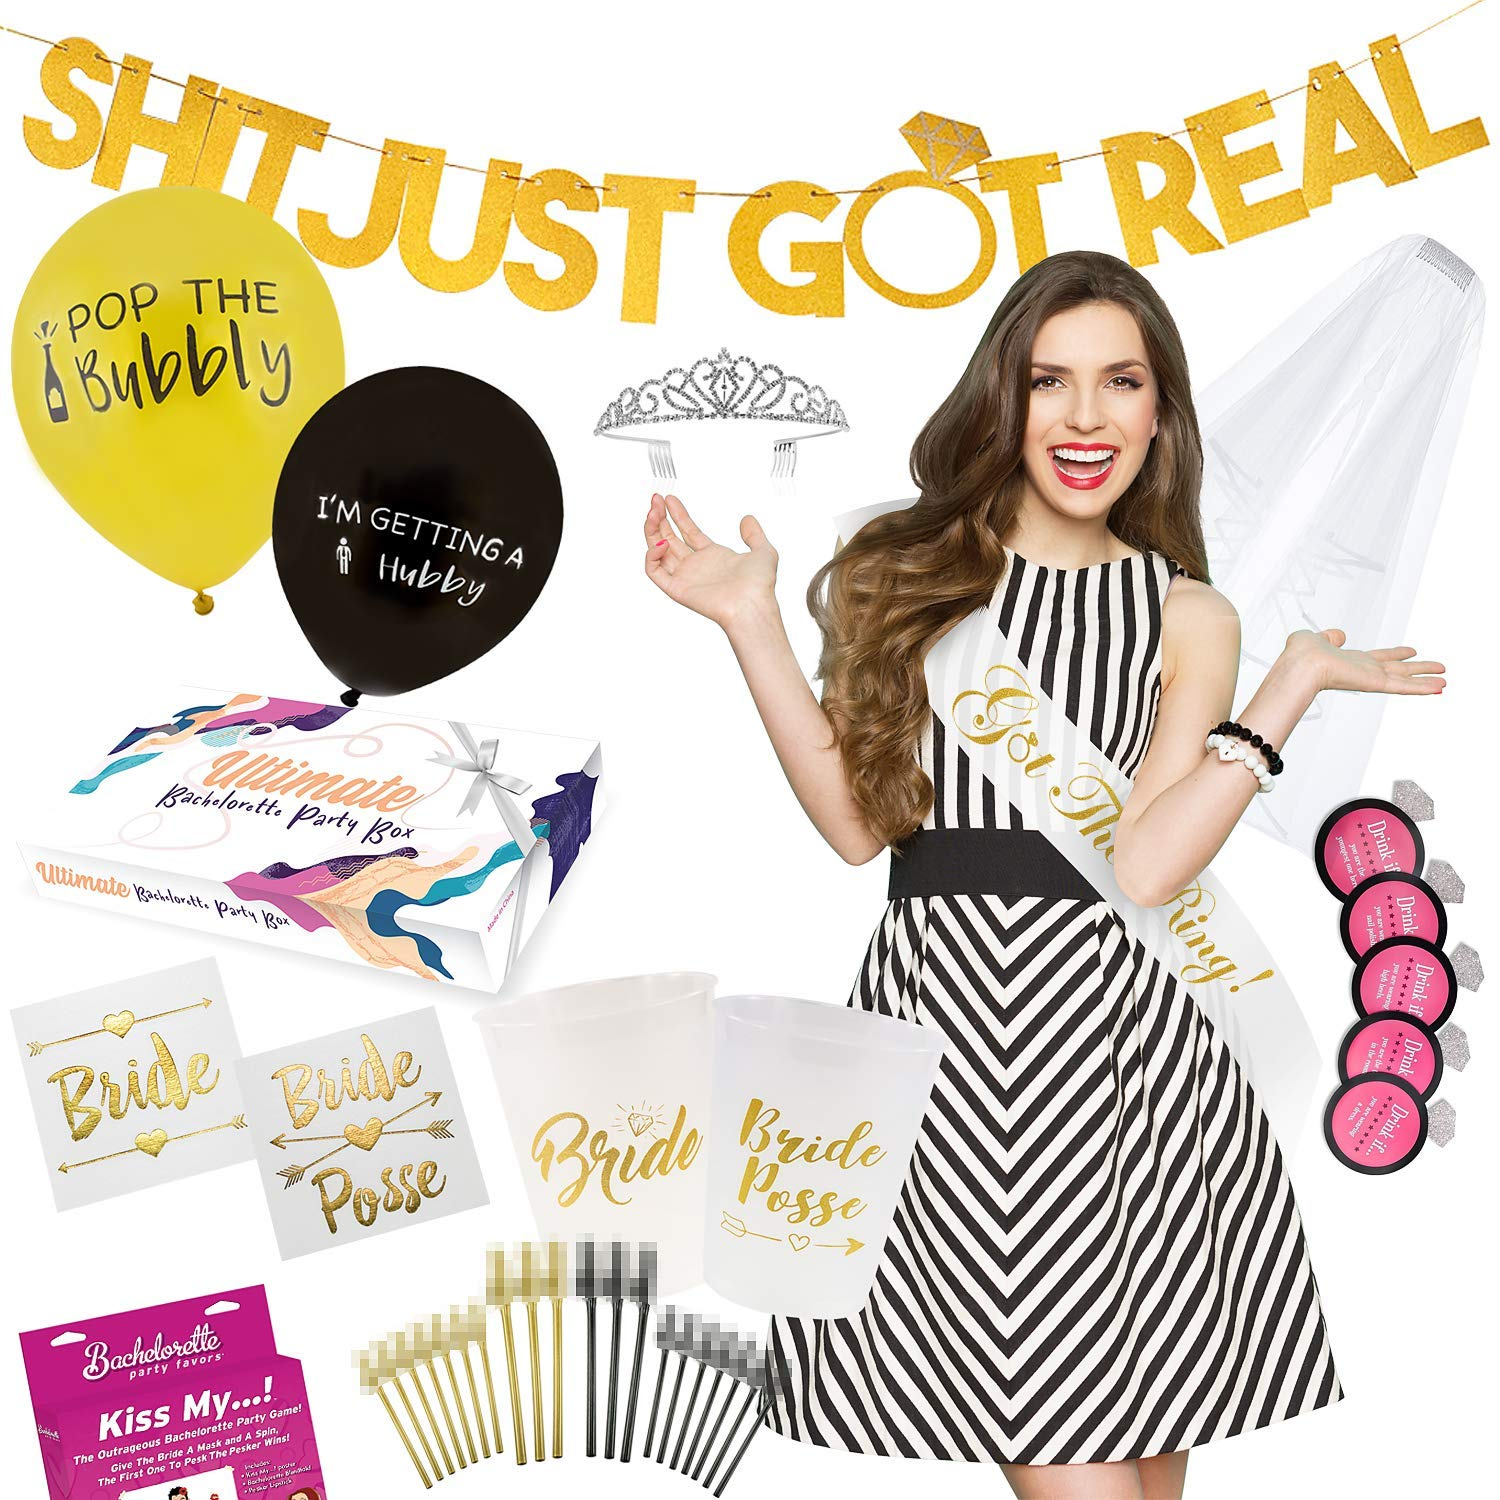 Ultimate Bachelorette Party Decorations Mega Value Kit - Tiara, Sash, Veil/Comb, Banner, Tattoos, Cups, Straws, Balloons, Party Games, Drinking Game - Bride To Be Bridal Shower - Party Supplies by iLove Party